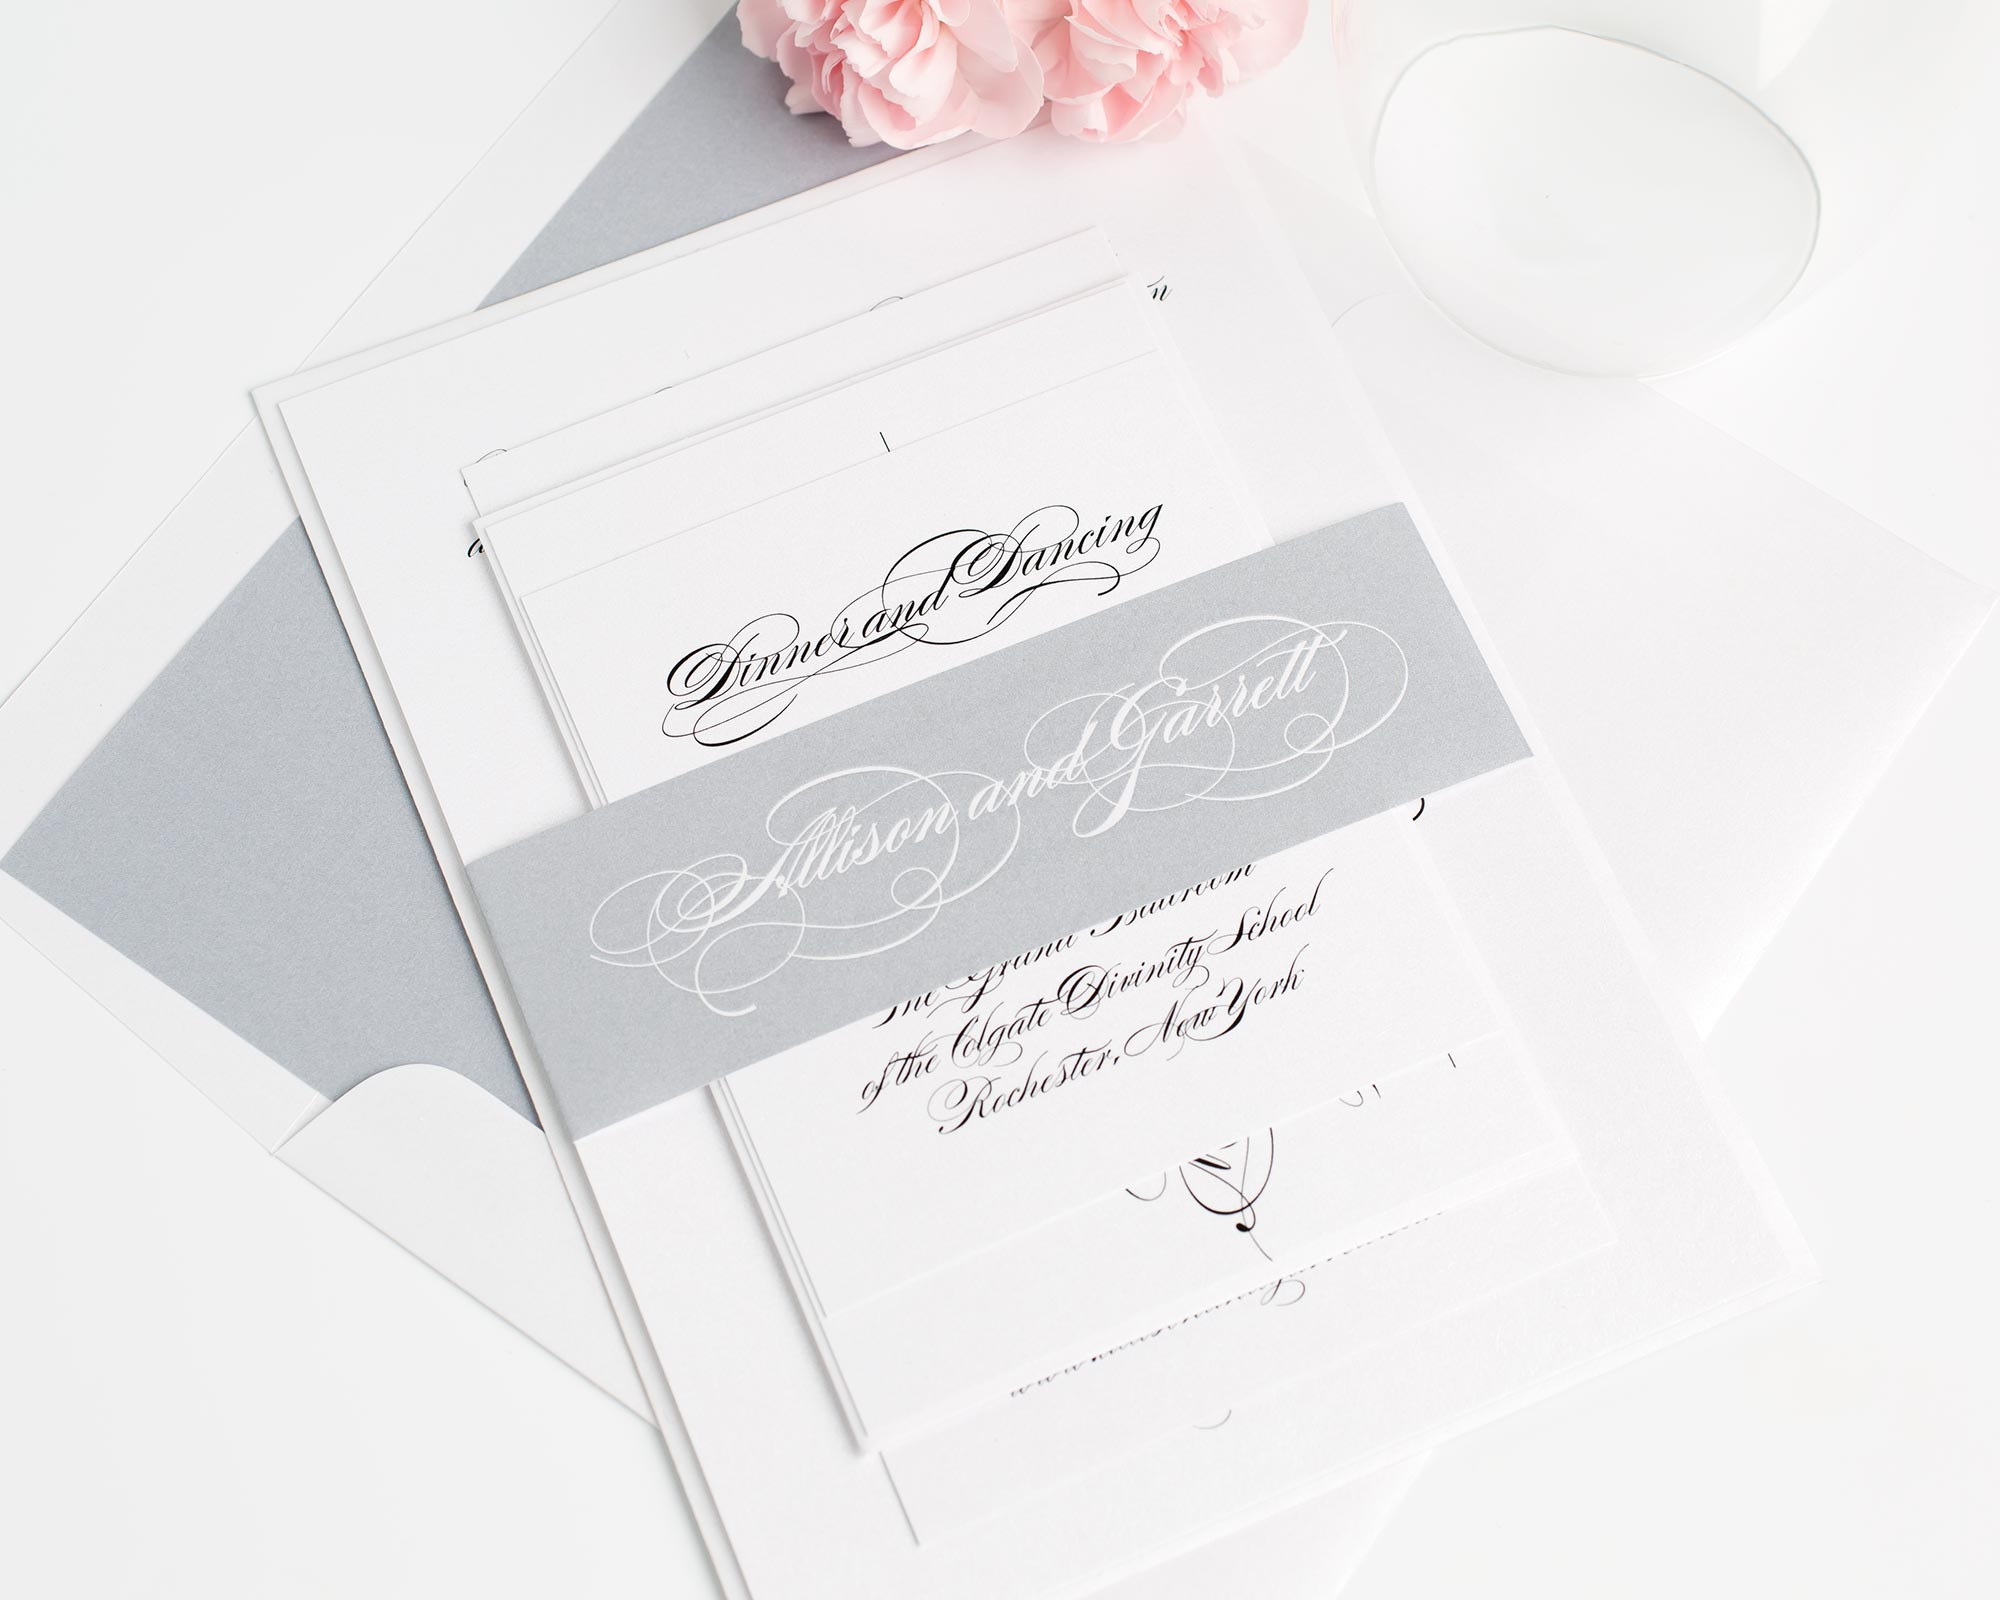 Timeless and Classic Wedding Invitations in All Script with Gray Accents